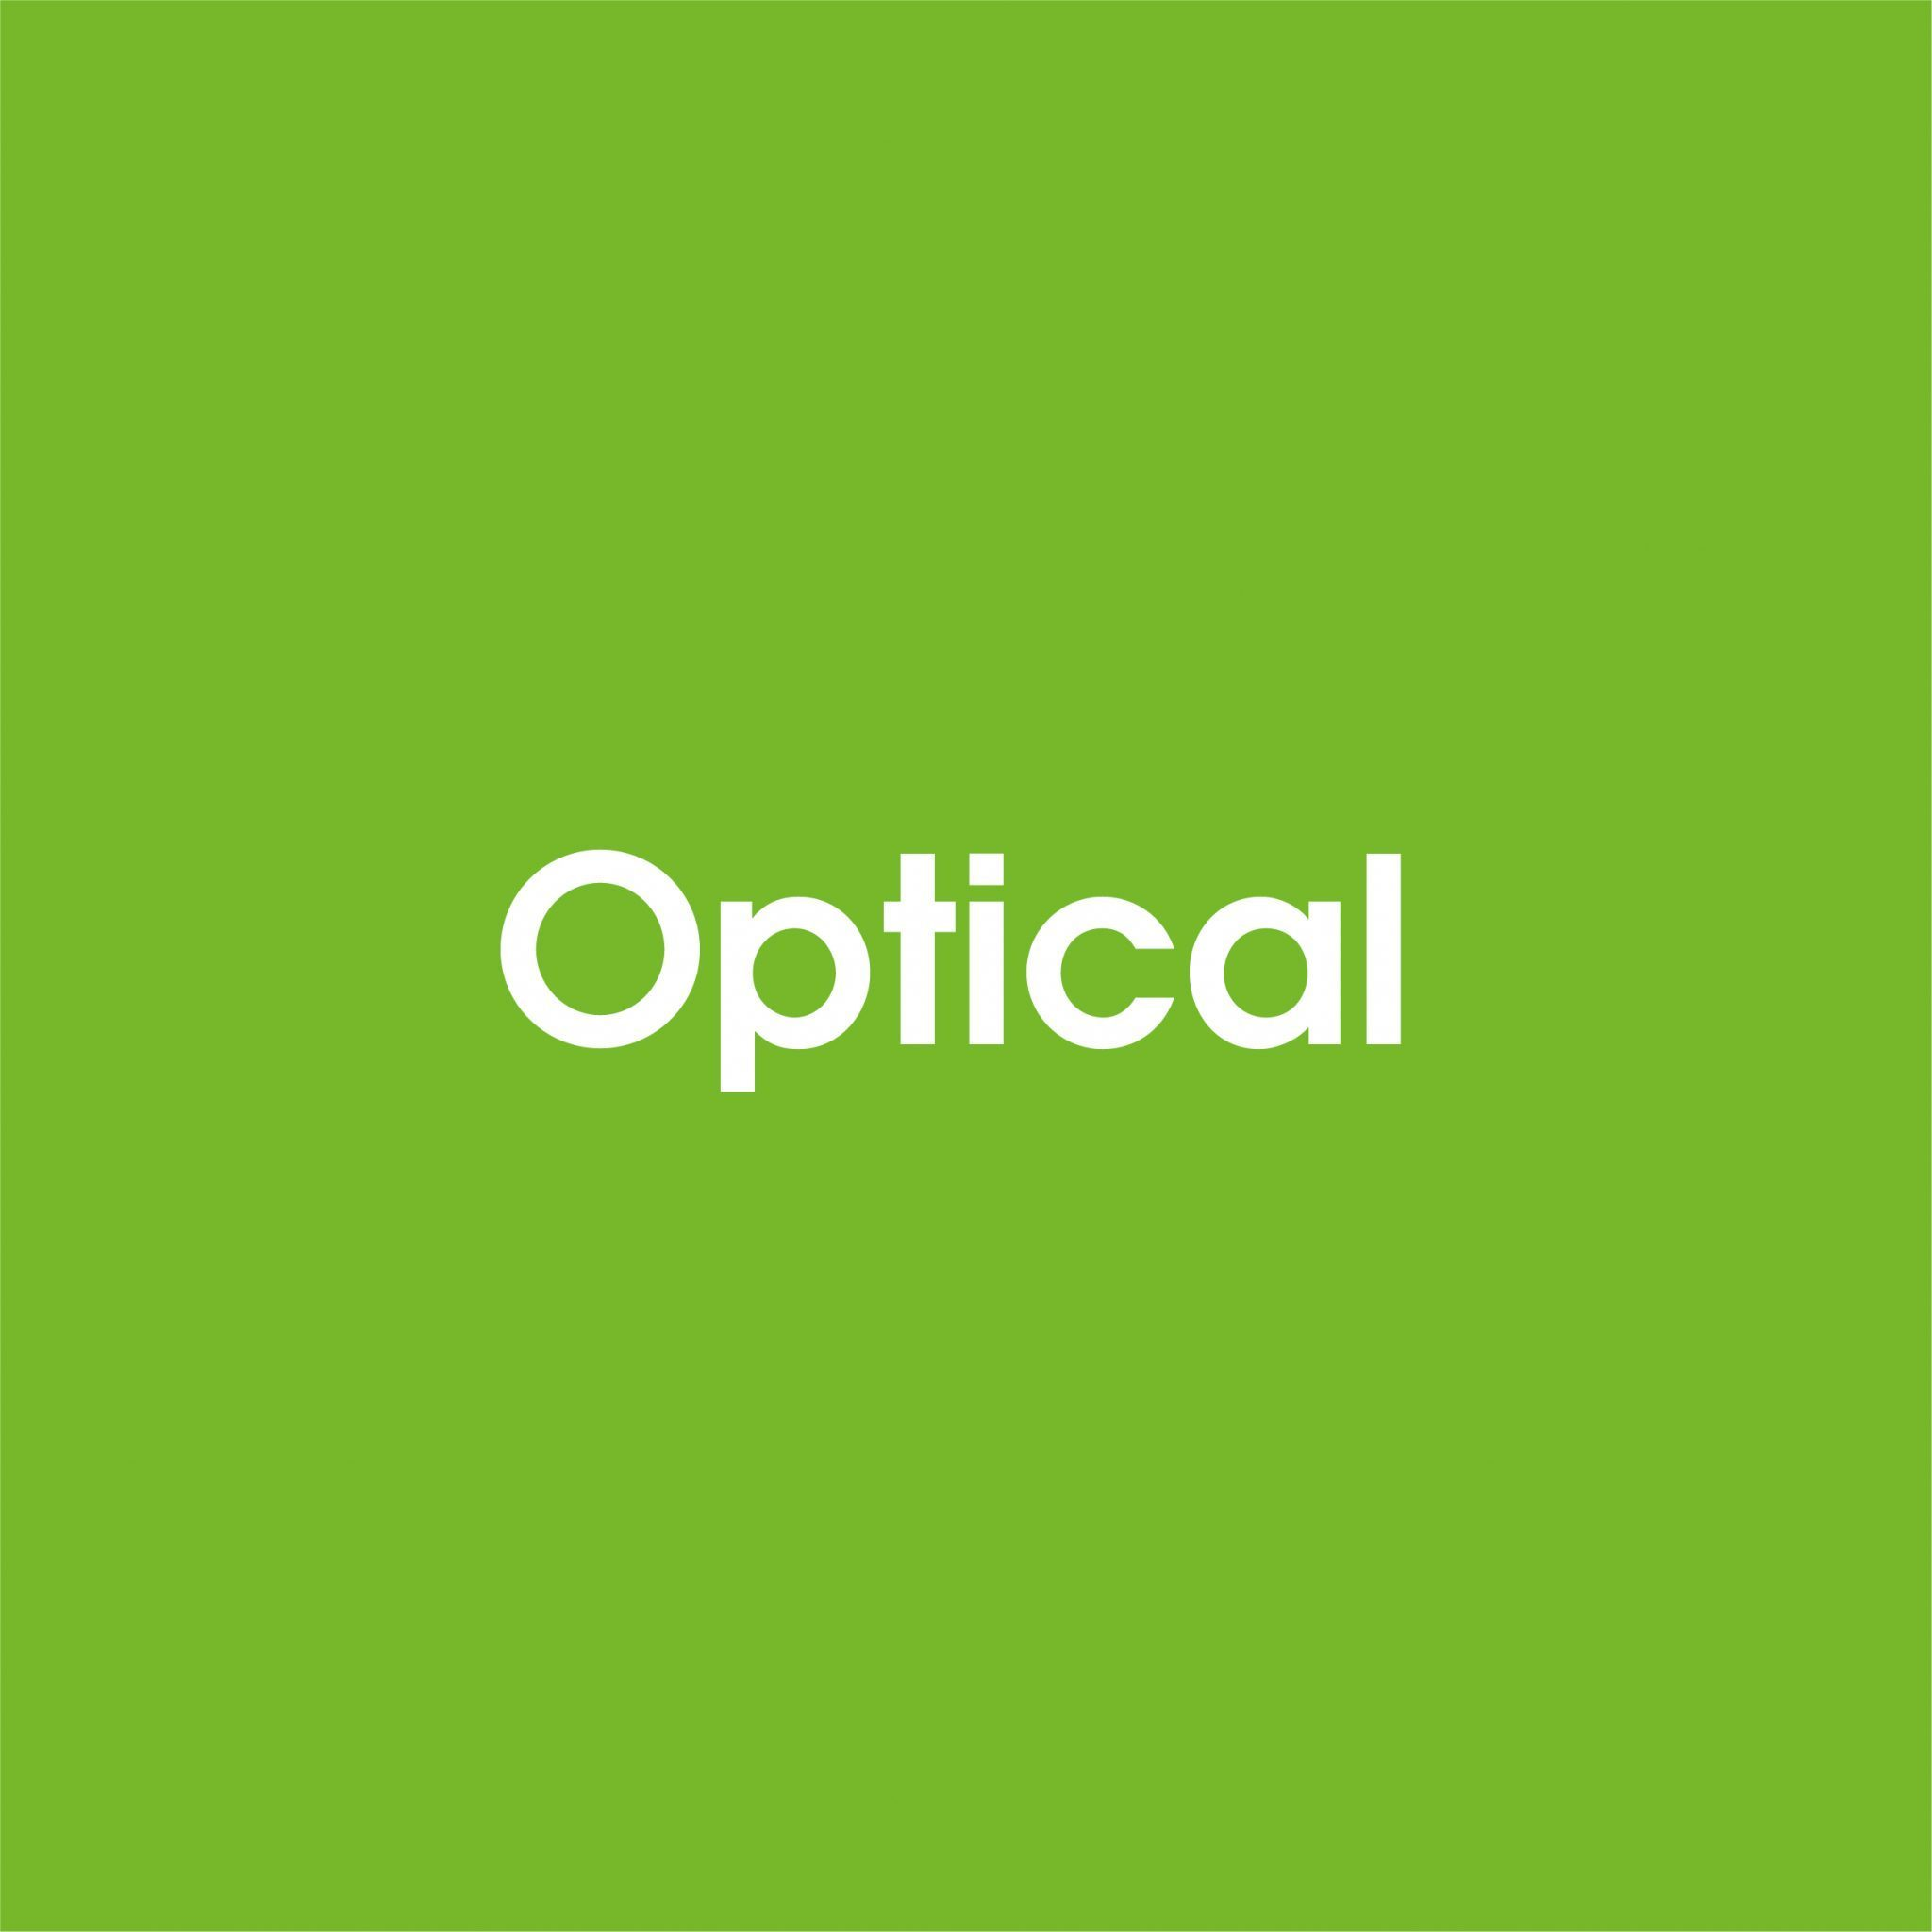 optical-william-russell